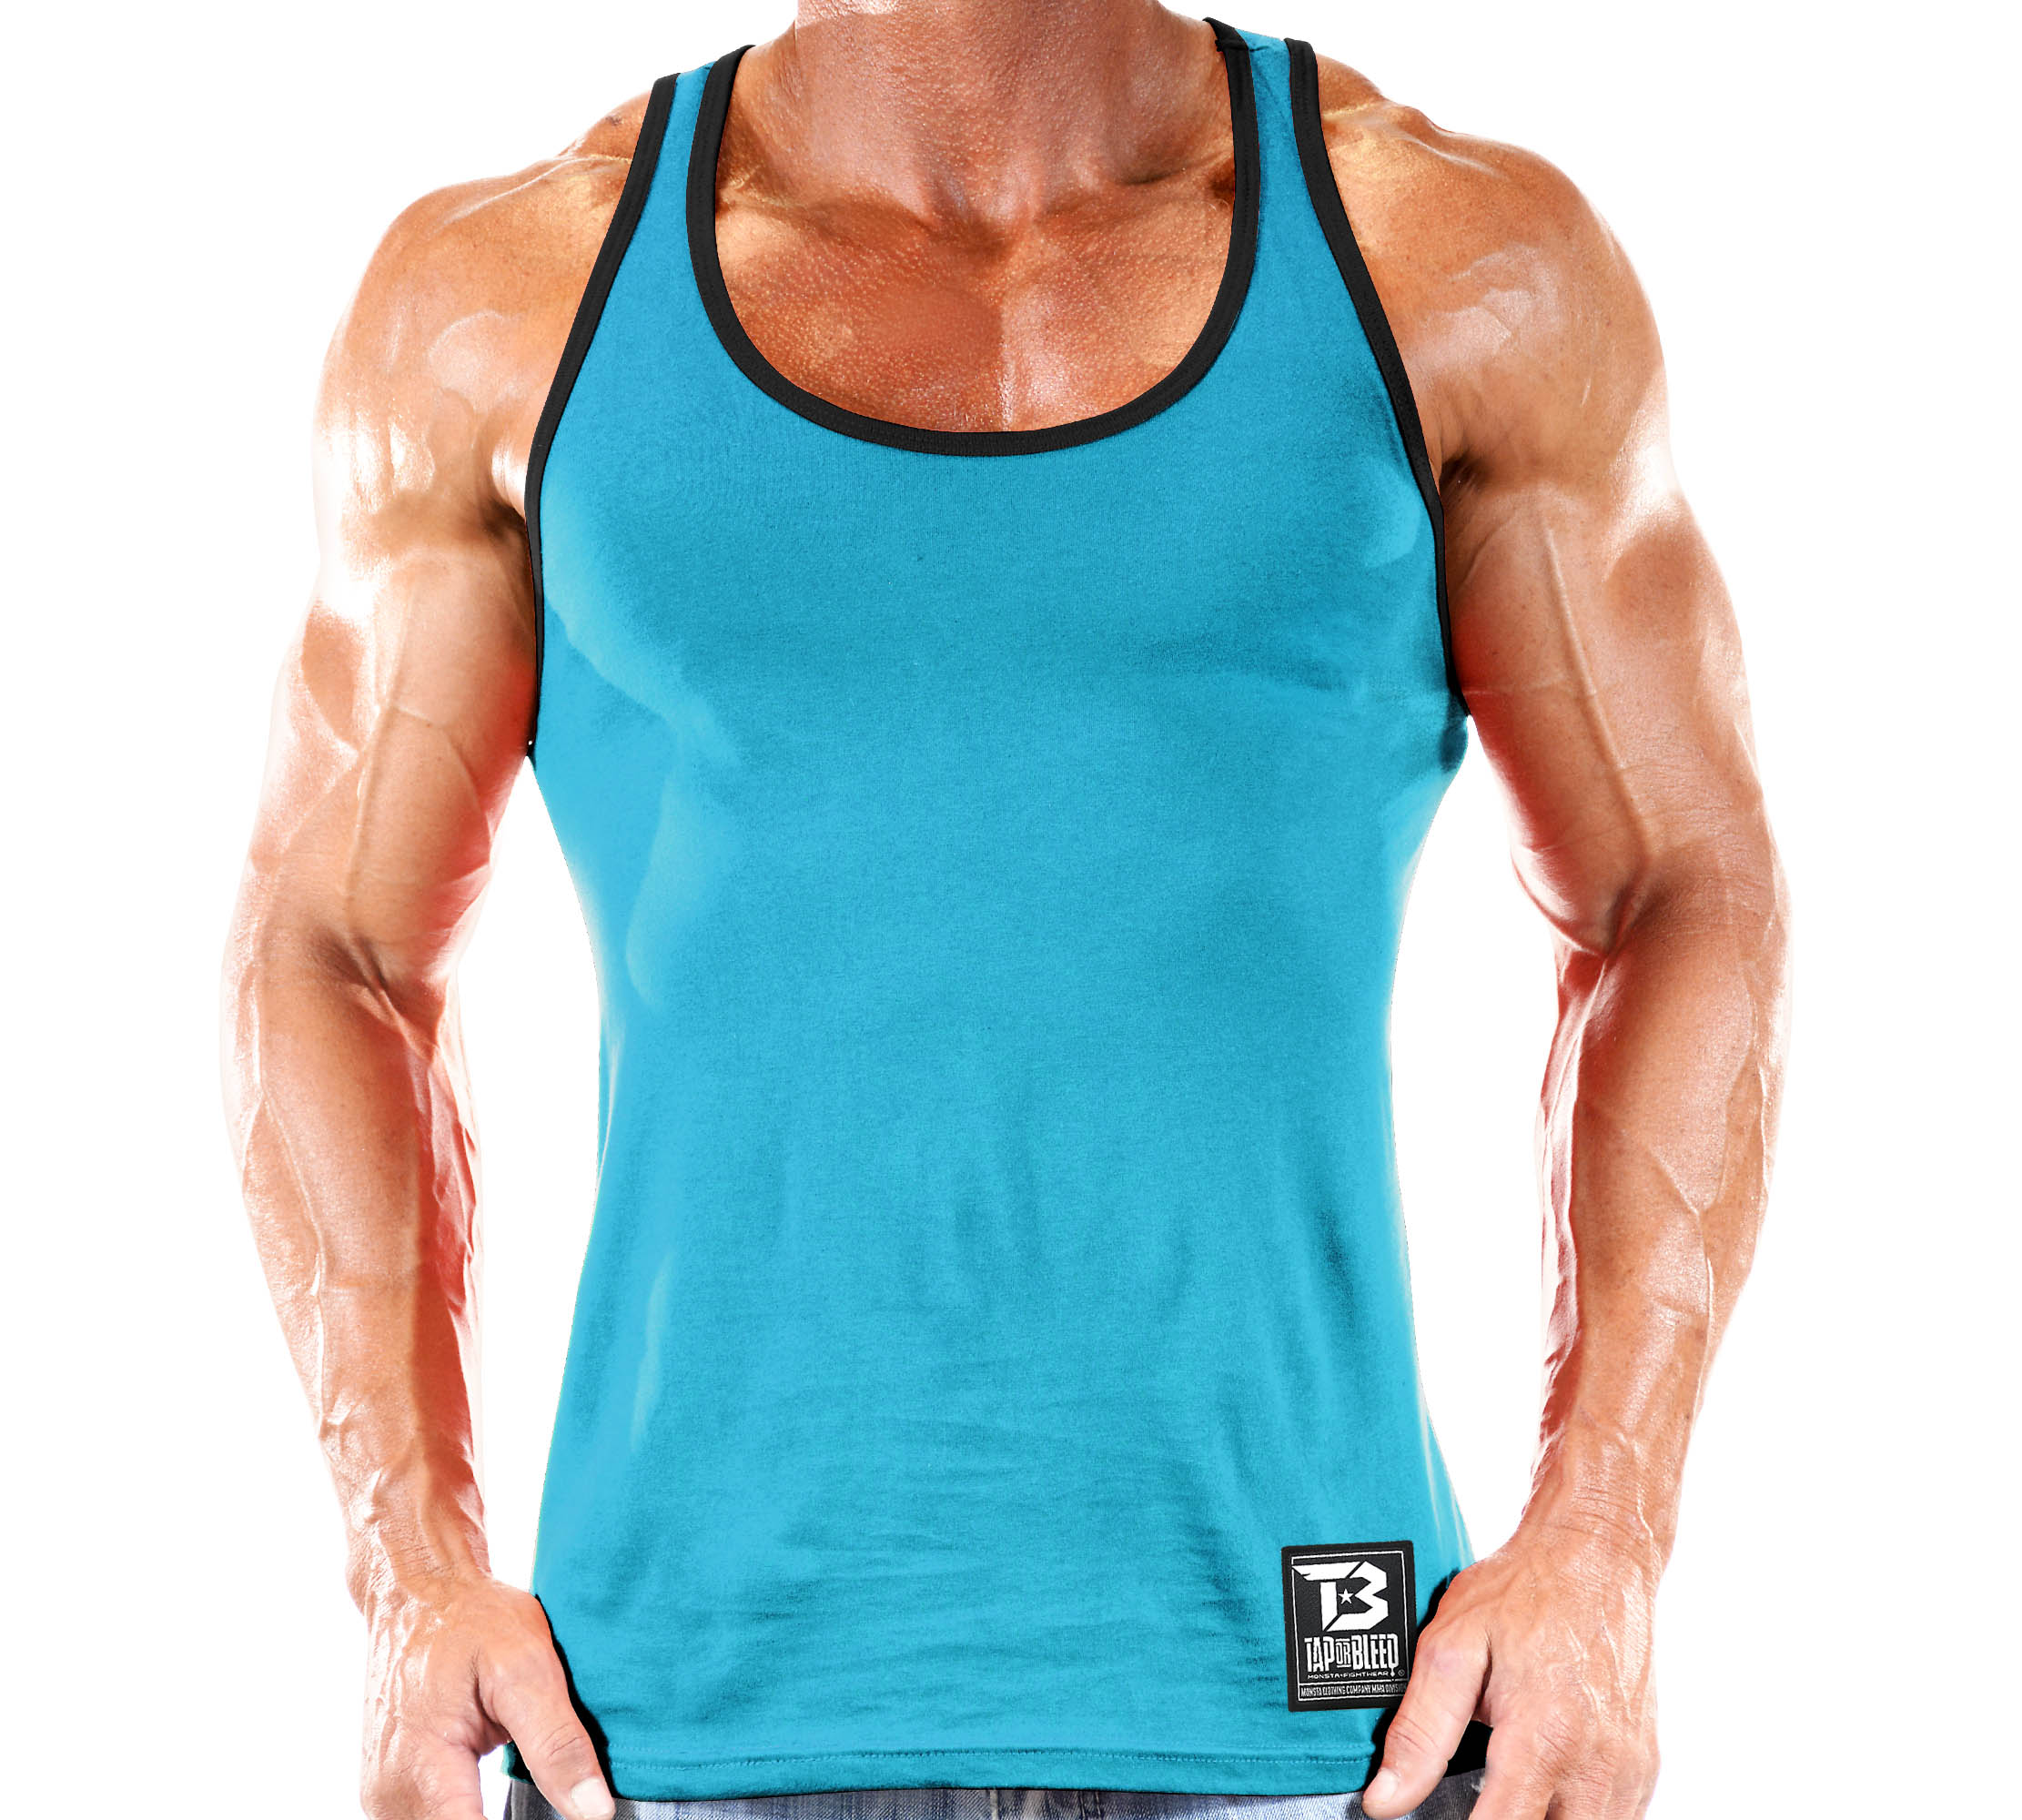 Workout Tops: Stringer Tank Top Tap Or Bleed Workout Clothes-000: Blue